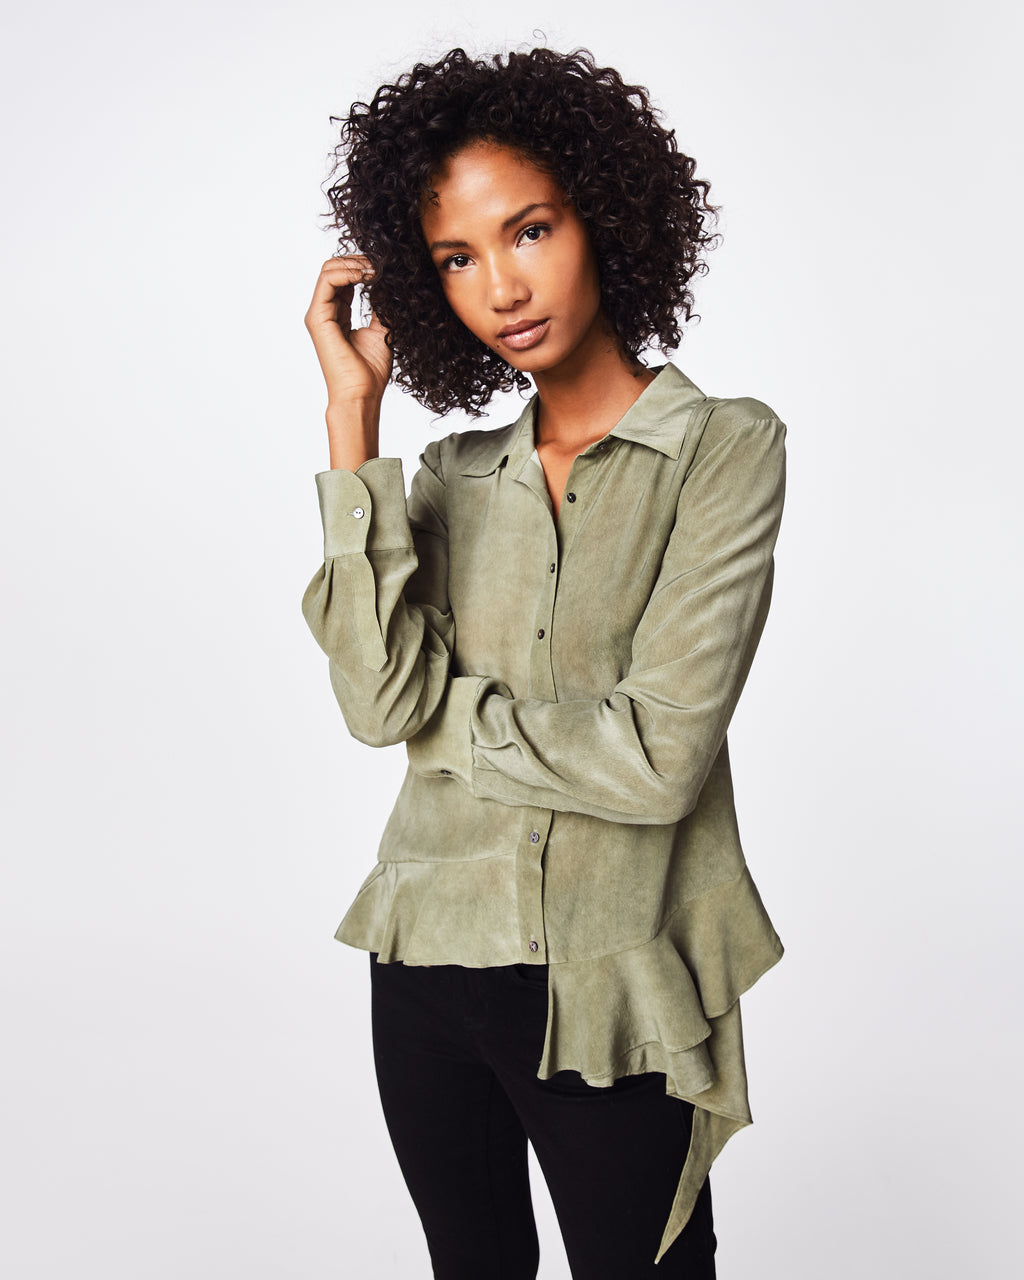 BG10304 - STONE WASH CDC ASYMM BUTTON DOWN SHIRT - tops - blouses - In a stone wash silk, this blouse features an asymmetrical hemline with ruffle details. Perfectly paired with denim or dressed up with a tailored skirt. Finished with front buttons for closure and unlined.